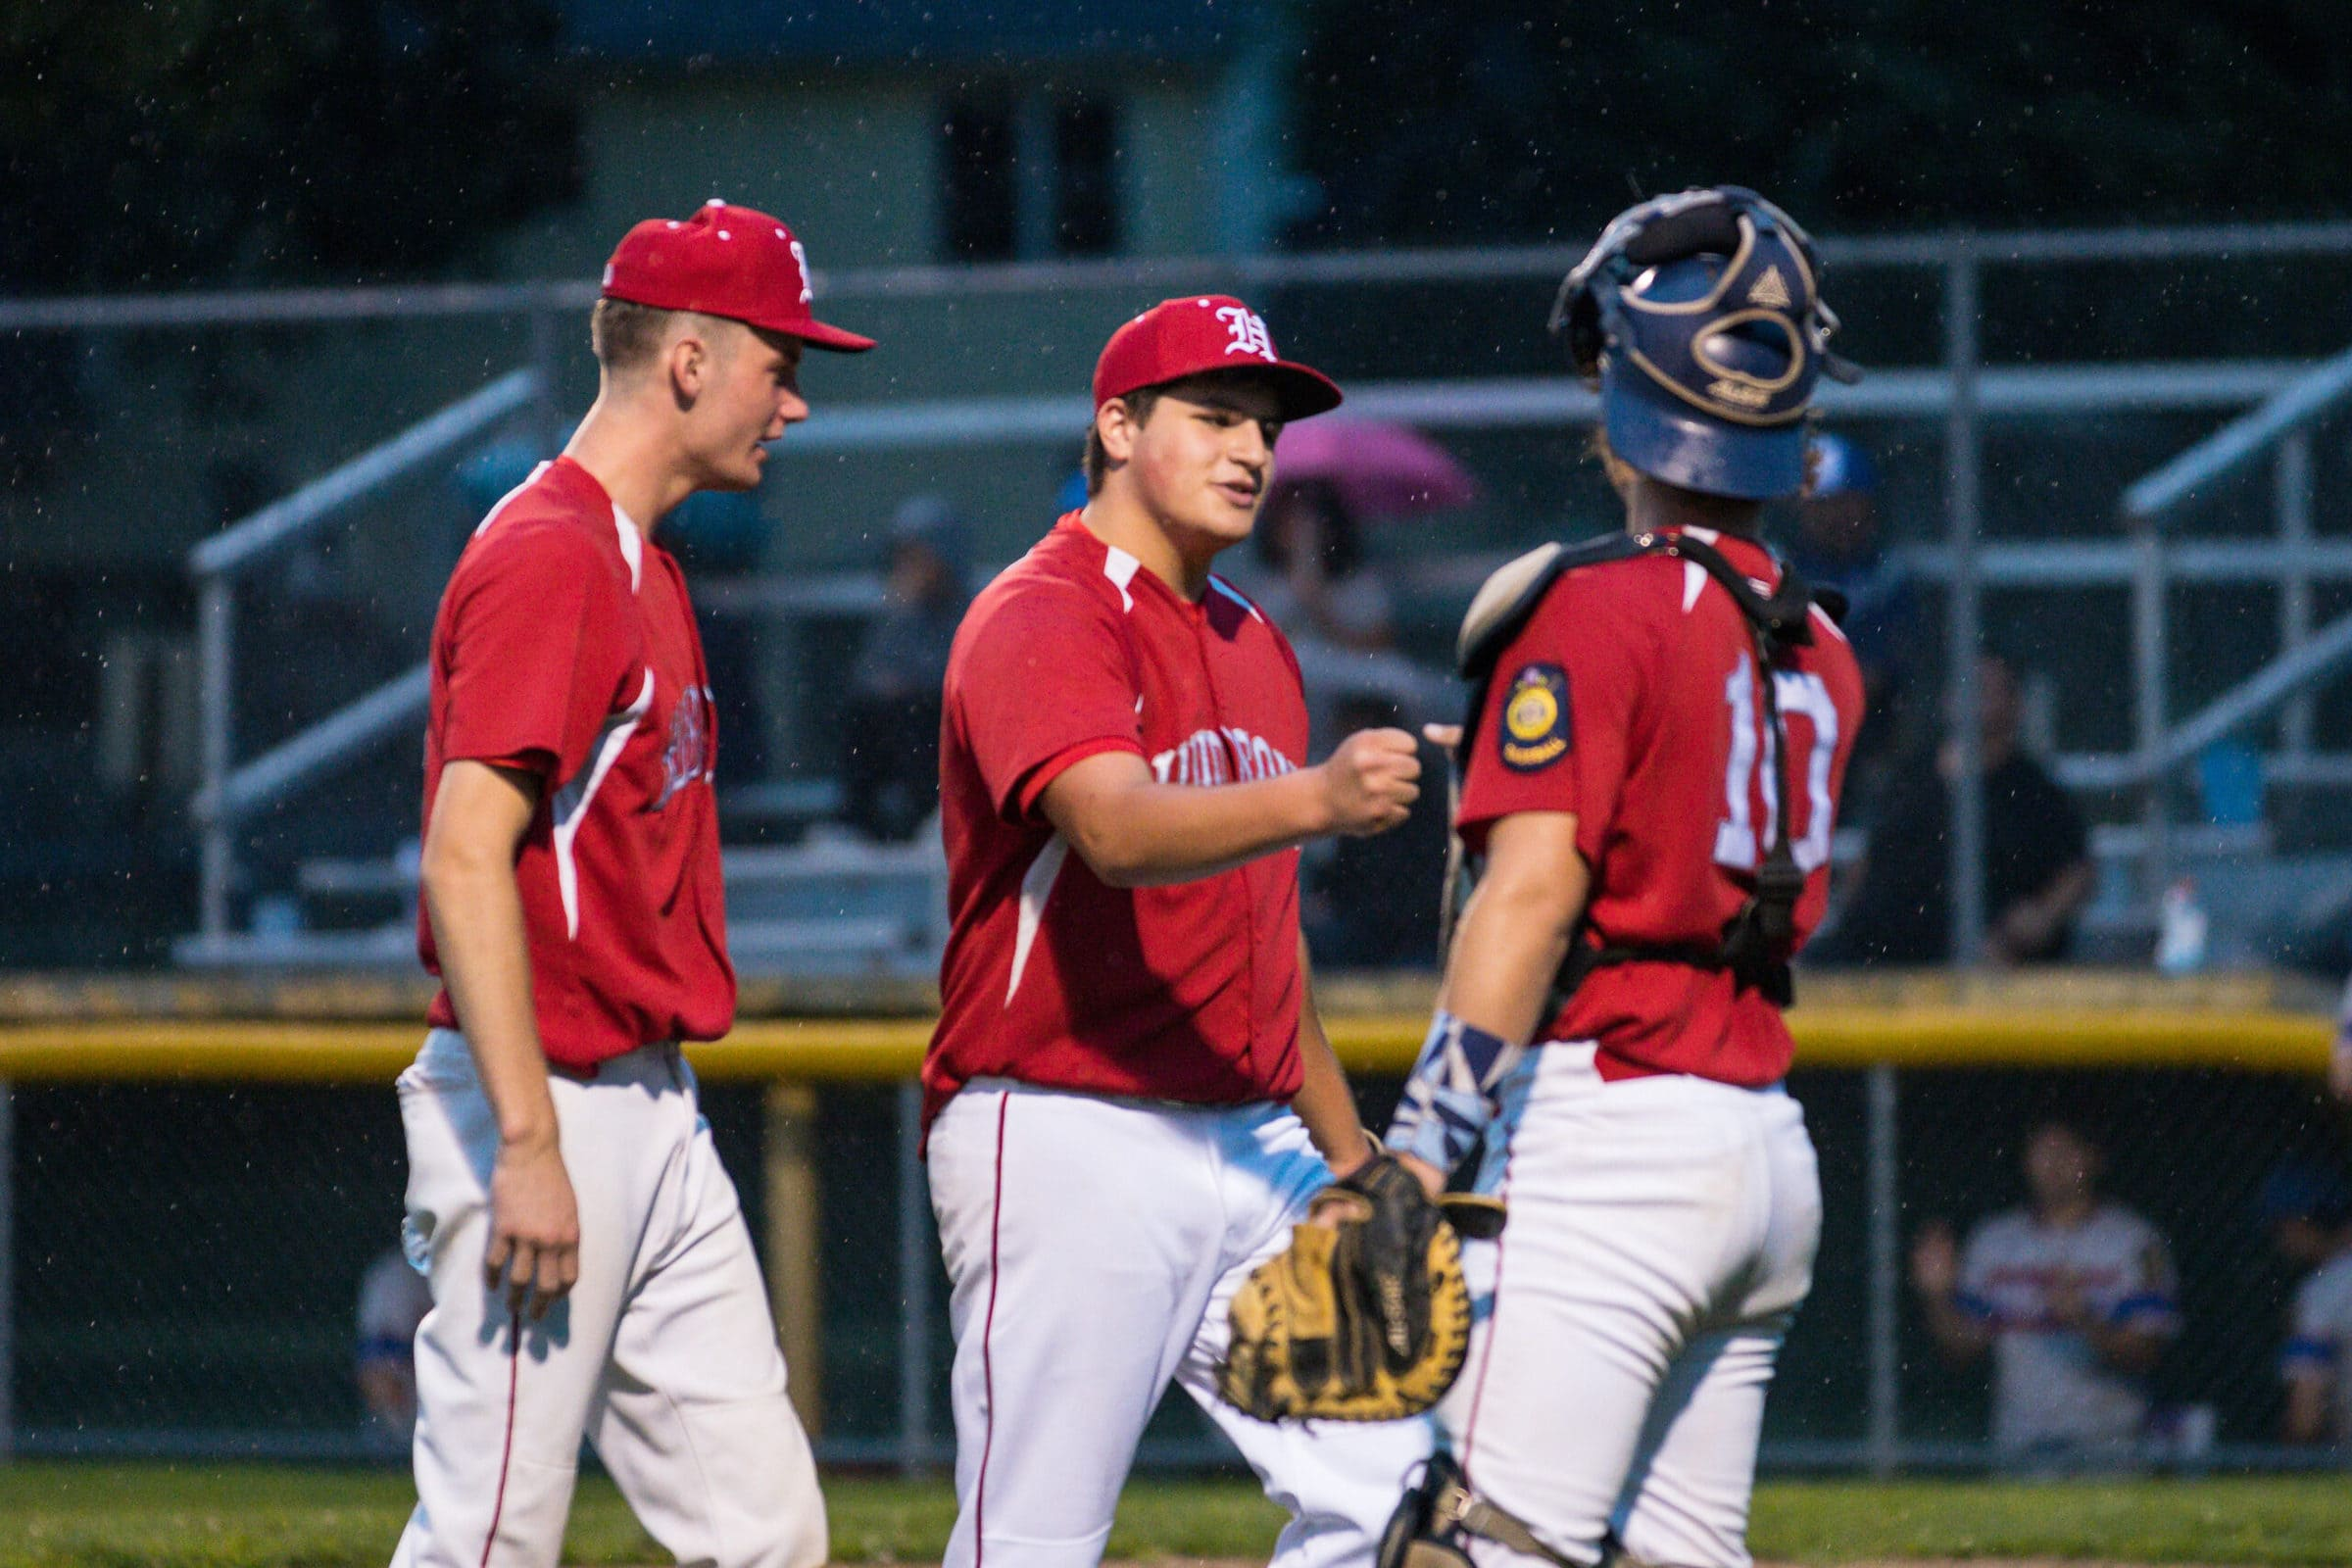 Hudson players celebrate during their game July 14.